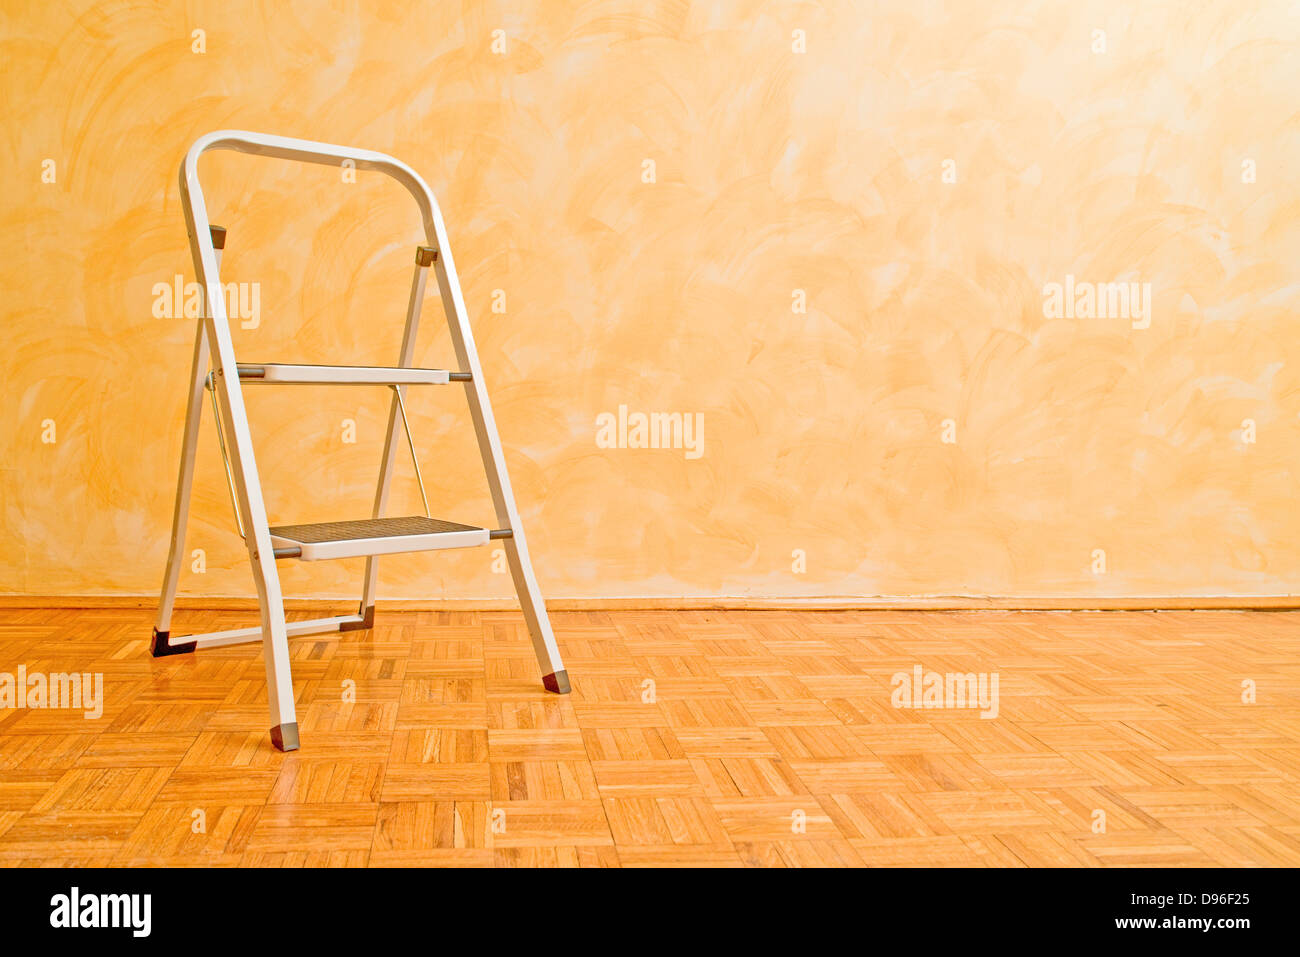 Aluminum ladder in the room, useful for housework. - Stock Image